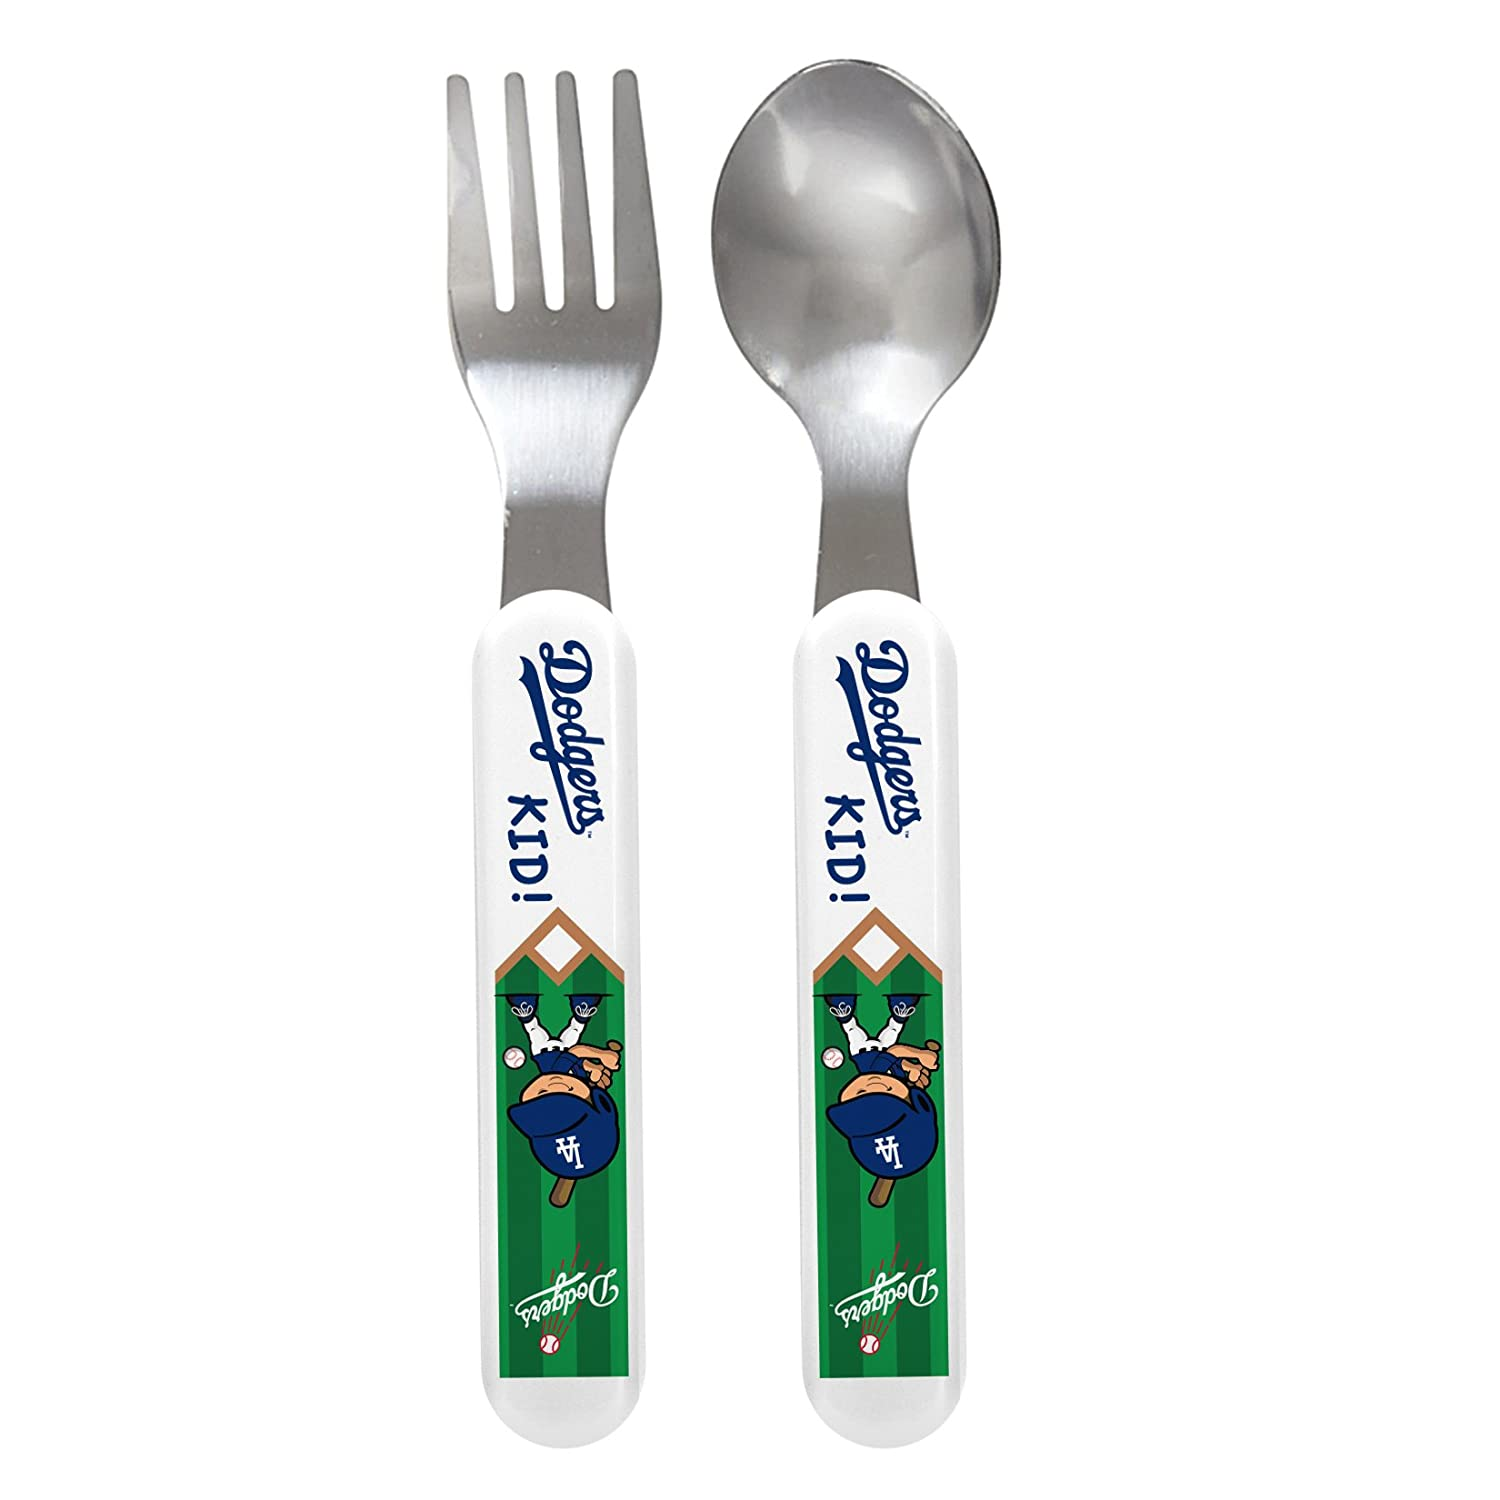 【希望者のみラッピング無料】 Baby Fanatic Fork Angeles and Spoon Set, Los Los Angeles Set, Dodgers by Baby Fanatic B001QGVVOG, 電材堂:04c3f607 --- a0267596.xsph.ru